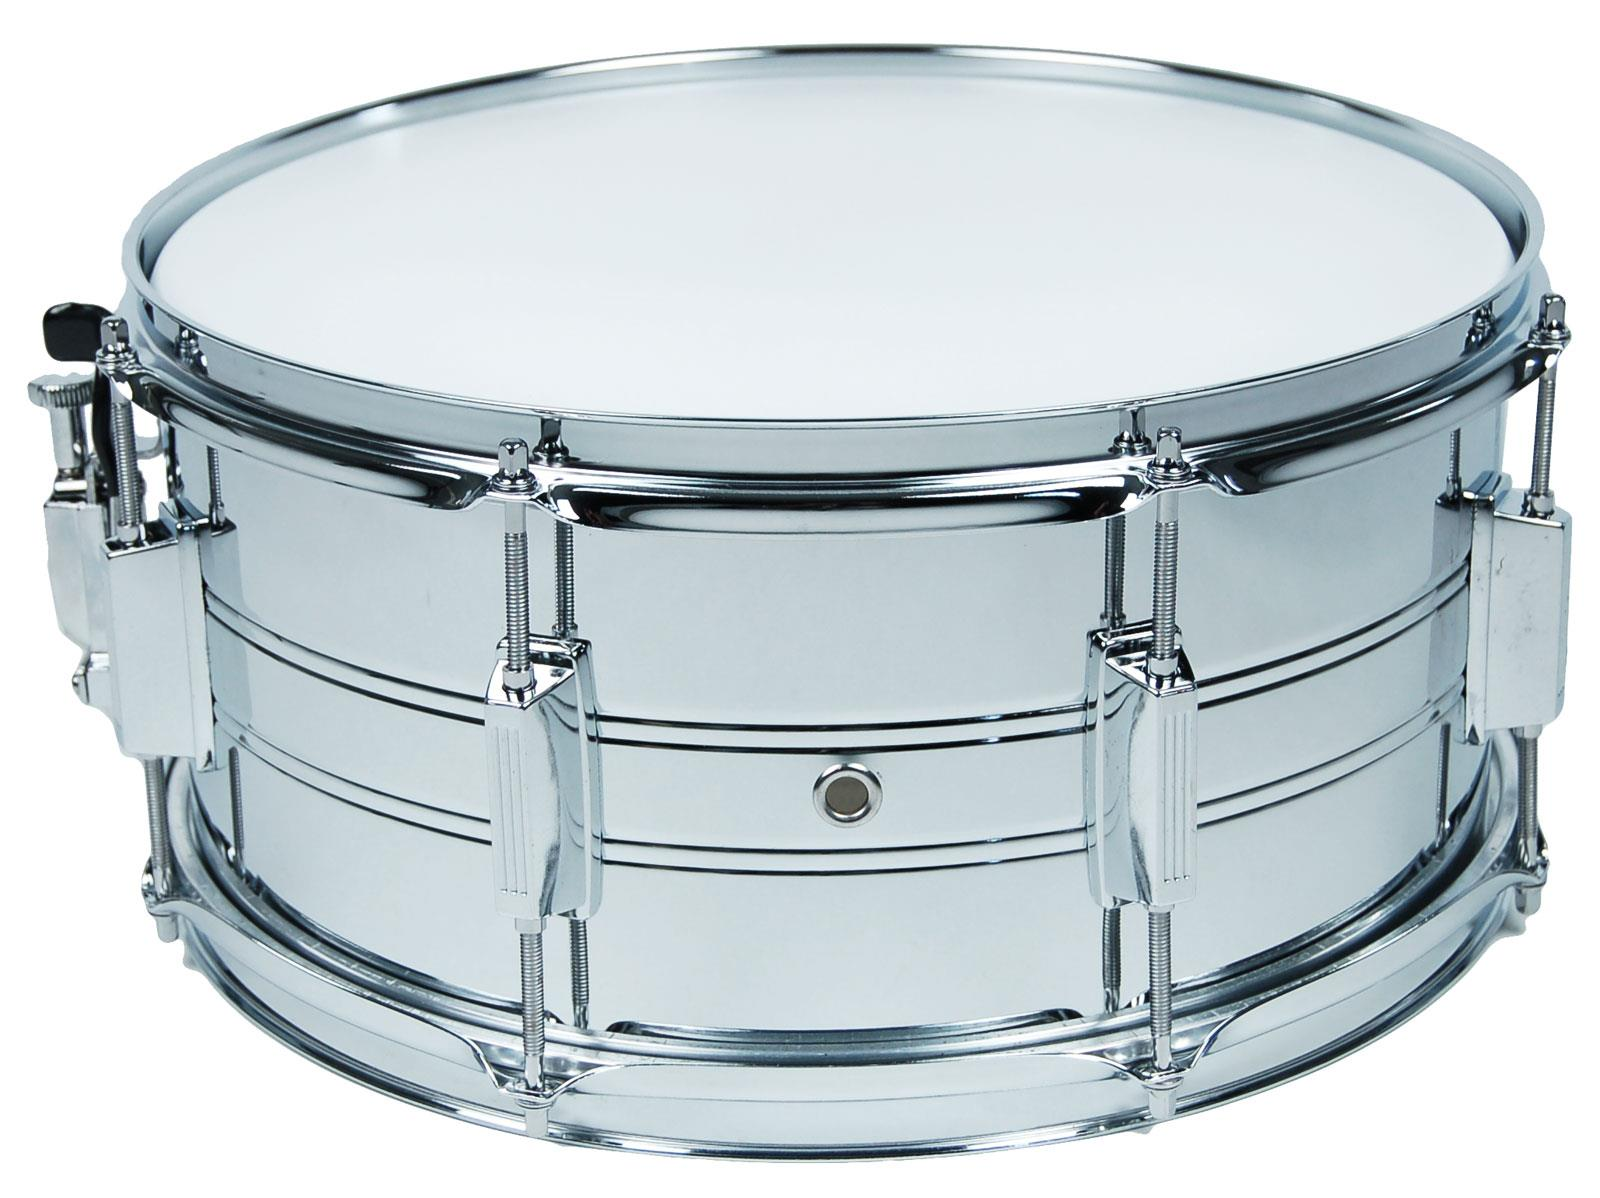 soho sd103 steel shell snare drum keymusic. Black Bedroom Furniture Sets. Home Design Ideas